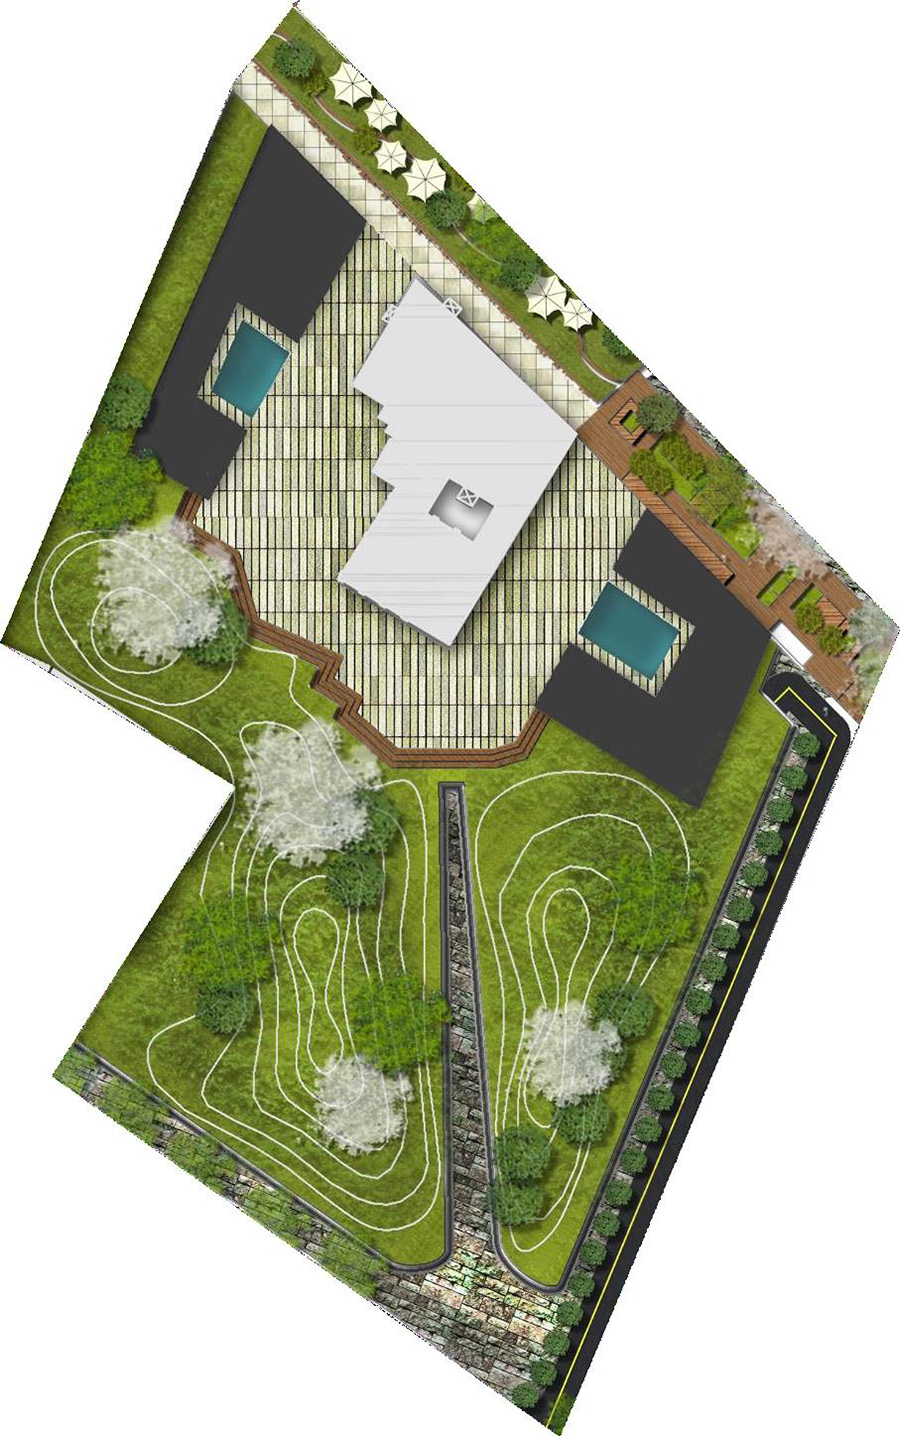 Figure 11: The entrance of Axis divided the site into two halves which were designed as mound, will change their recreational mood according to seasons. The new buildings respecting the historic Eisfabric building, merged with landscape by their sloppy character. The old premise is proposed as ecological museum for Spree River's bio diversity. The river shore is left vacant for 50 meter. Source: author